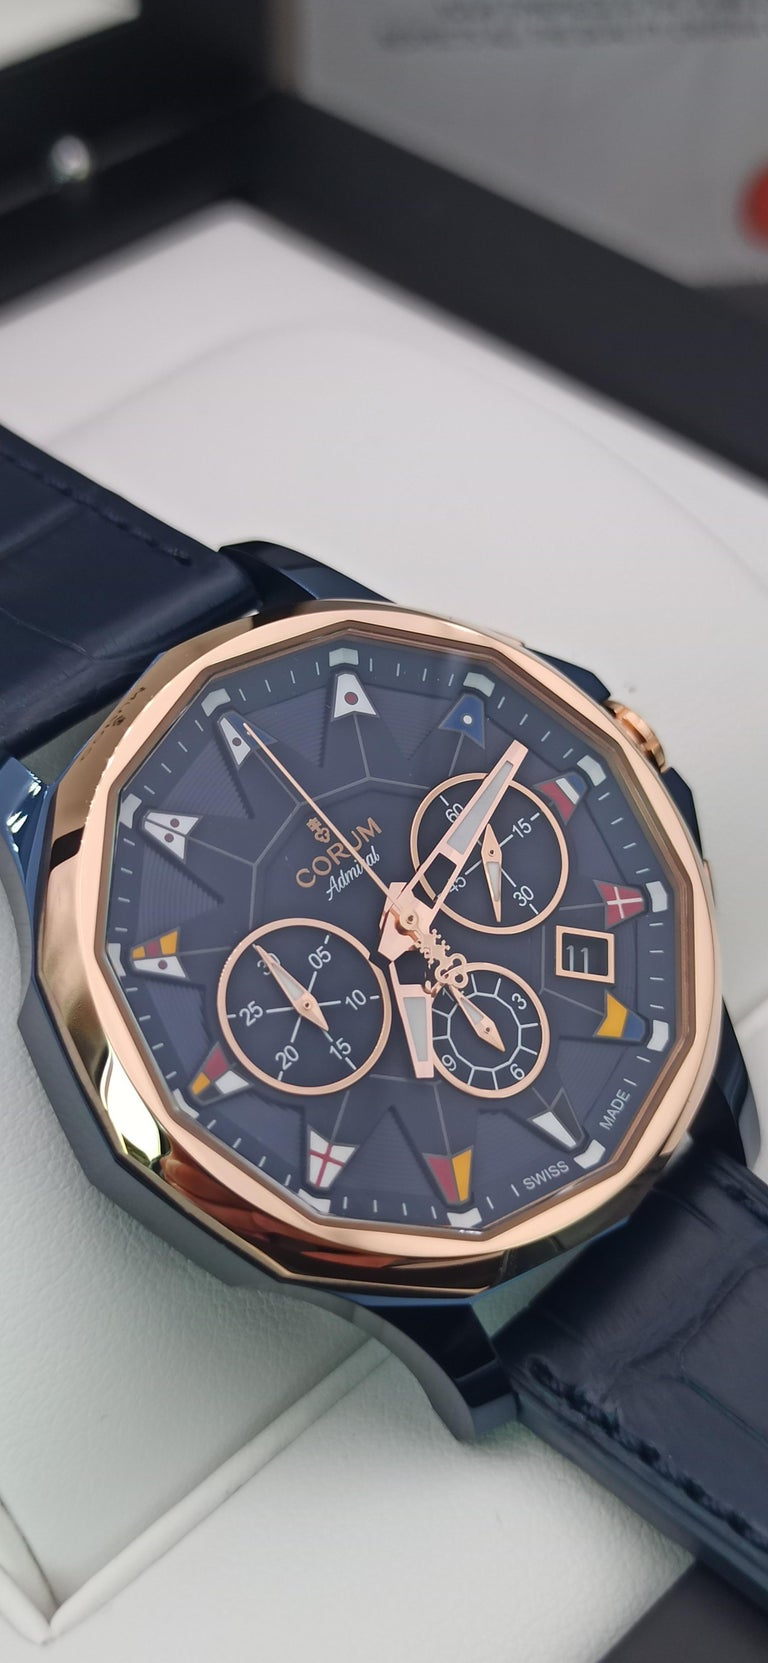 Corum Admiral Cup, Chronograph,   18kt rose gold and PVD Steel case,  42 mm diameter, Automatic Chronograph,   Very nice CORUM watch made in  limited production